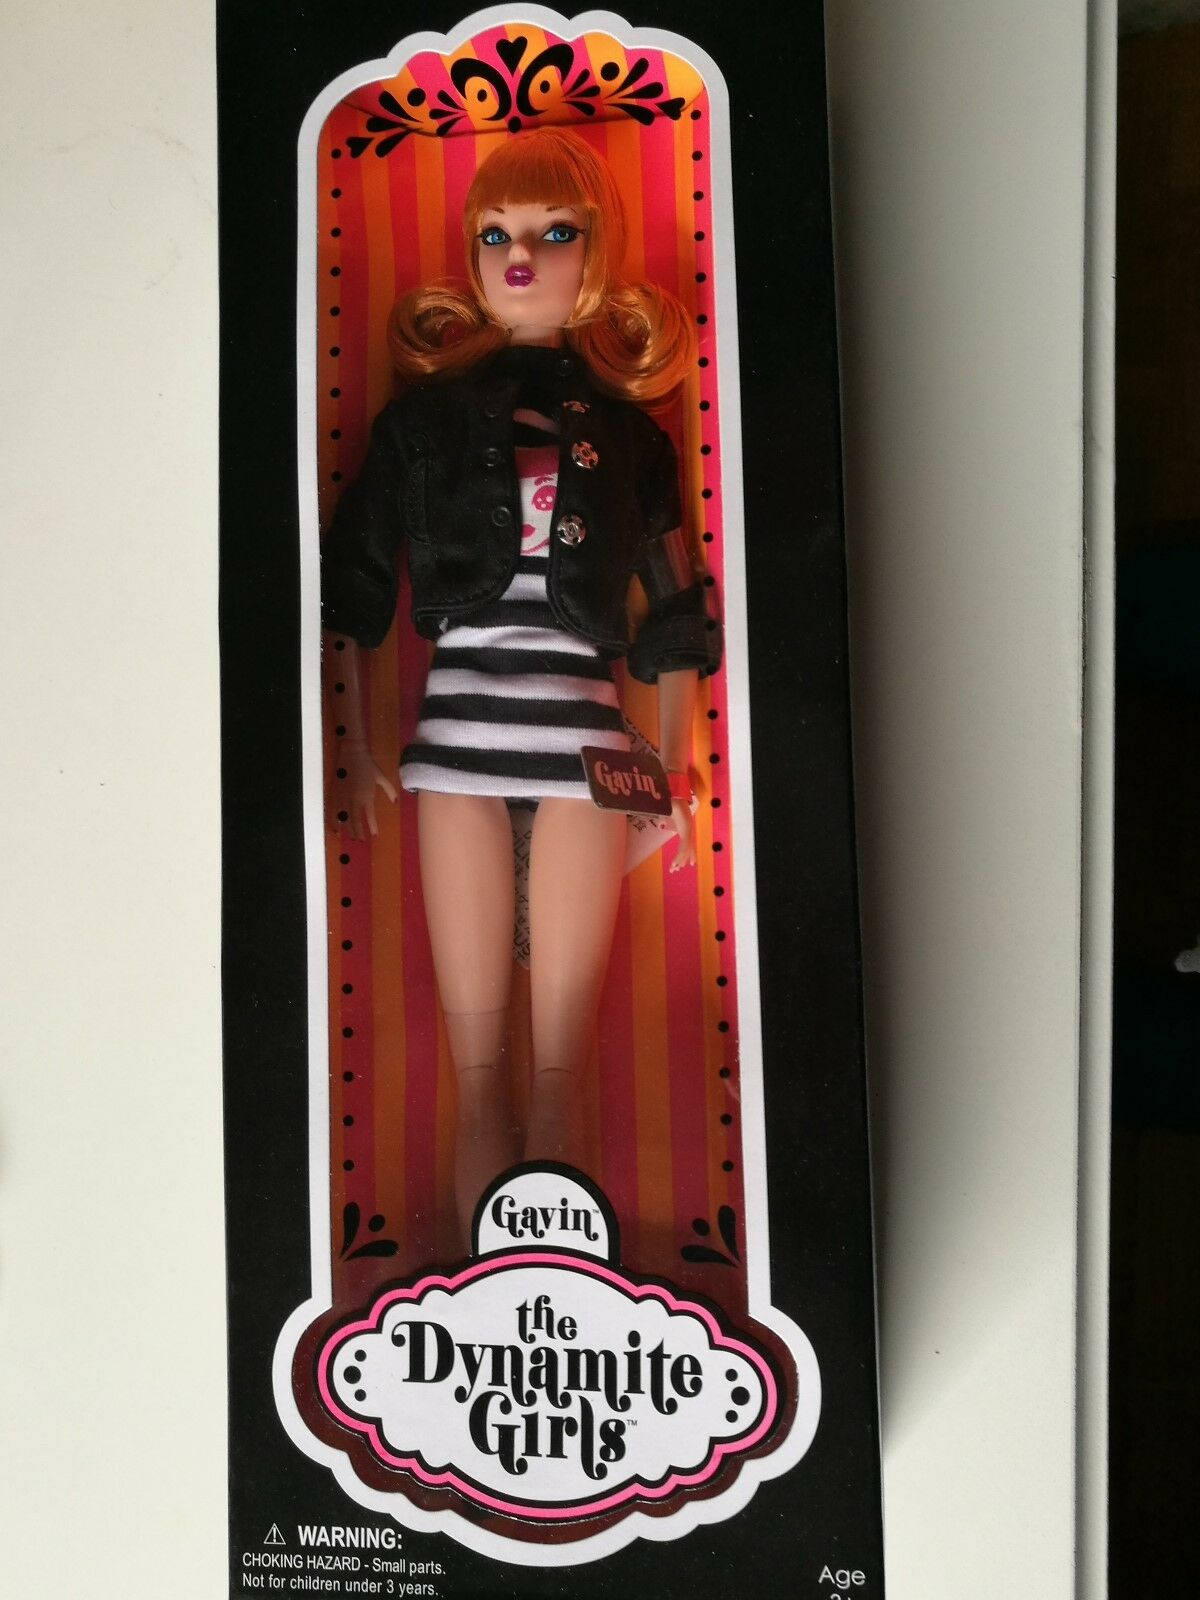 FASHION Royalty Integrity TOYS the Dynamite Girls Collection WAVE 1 Gavin NRFB